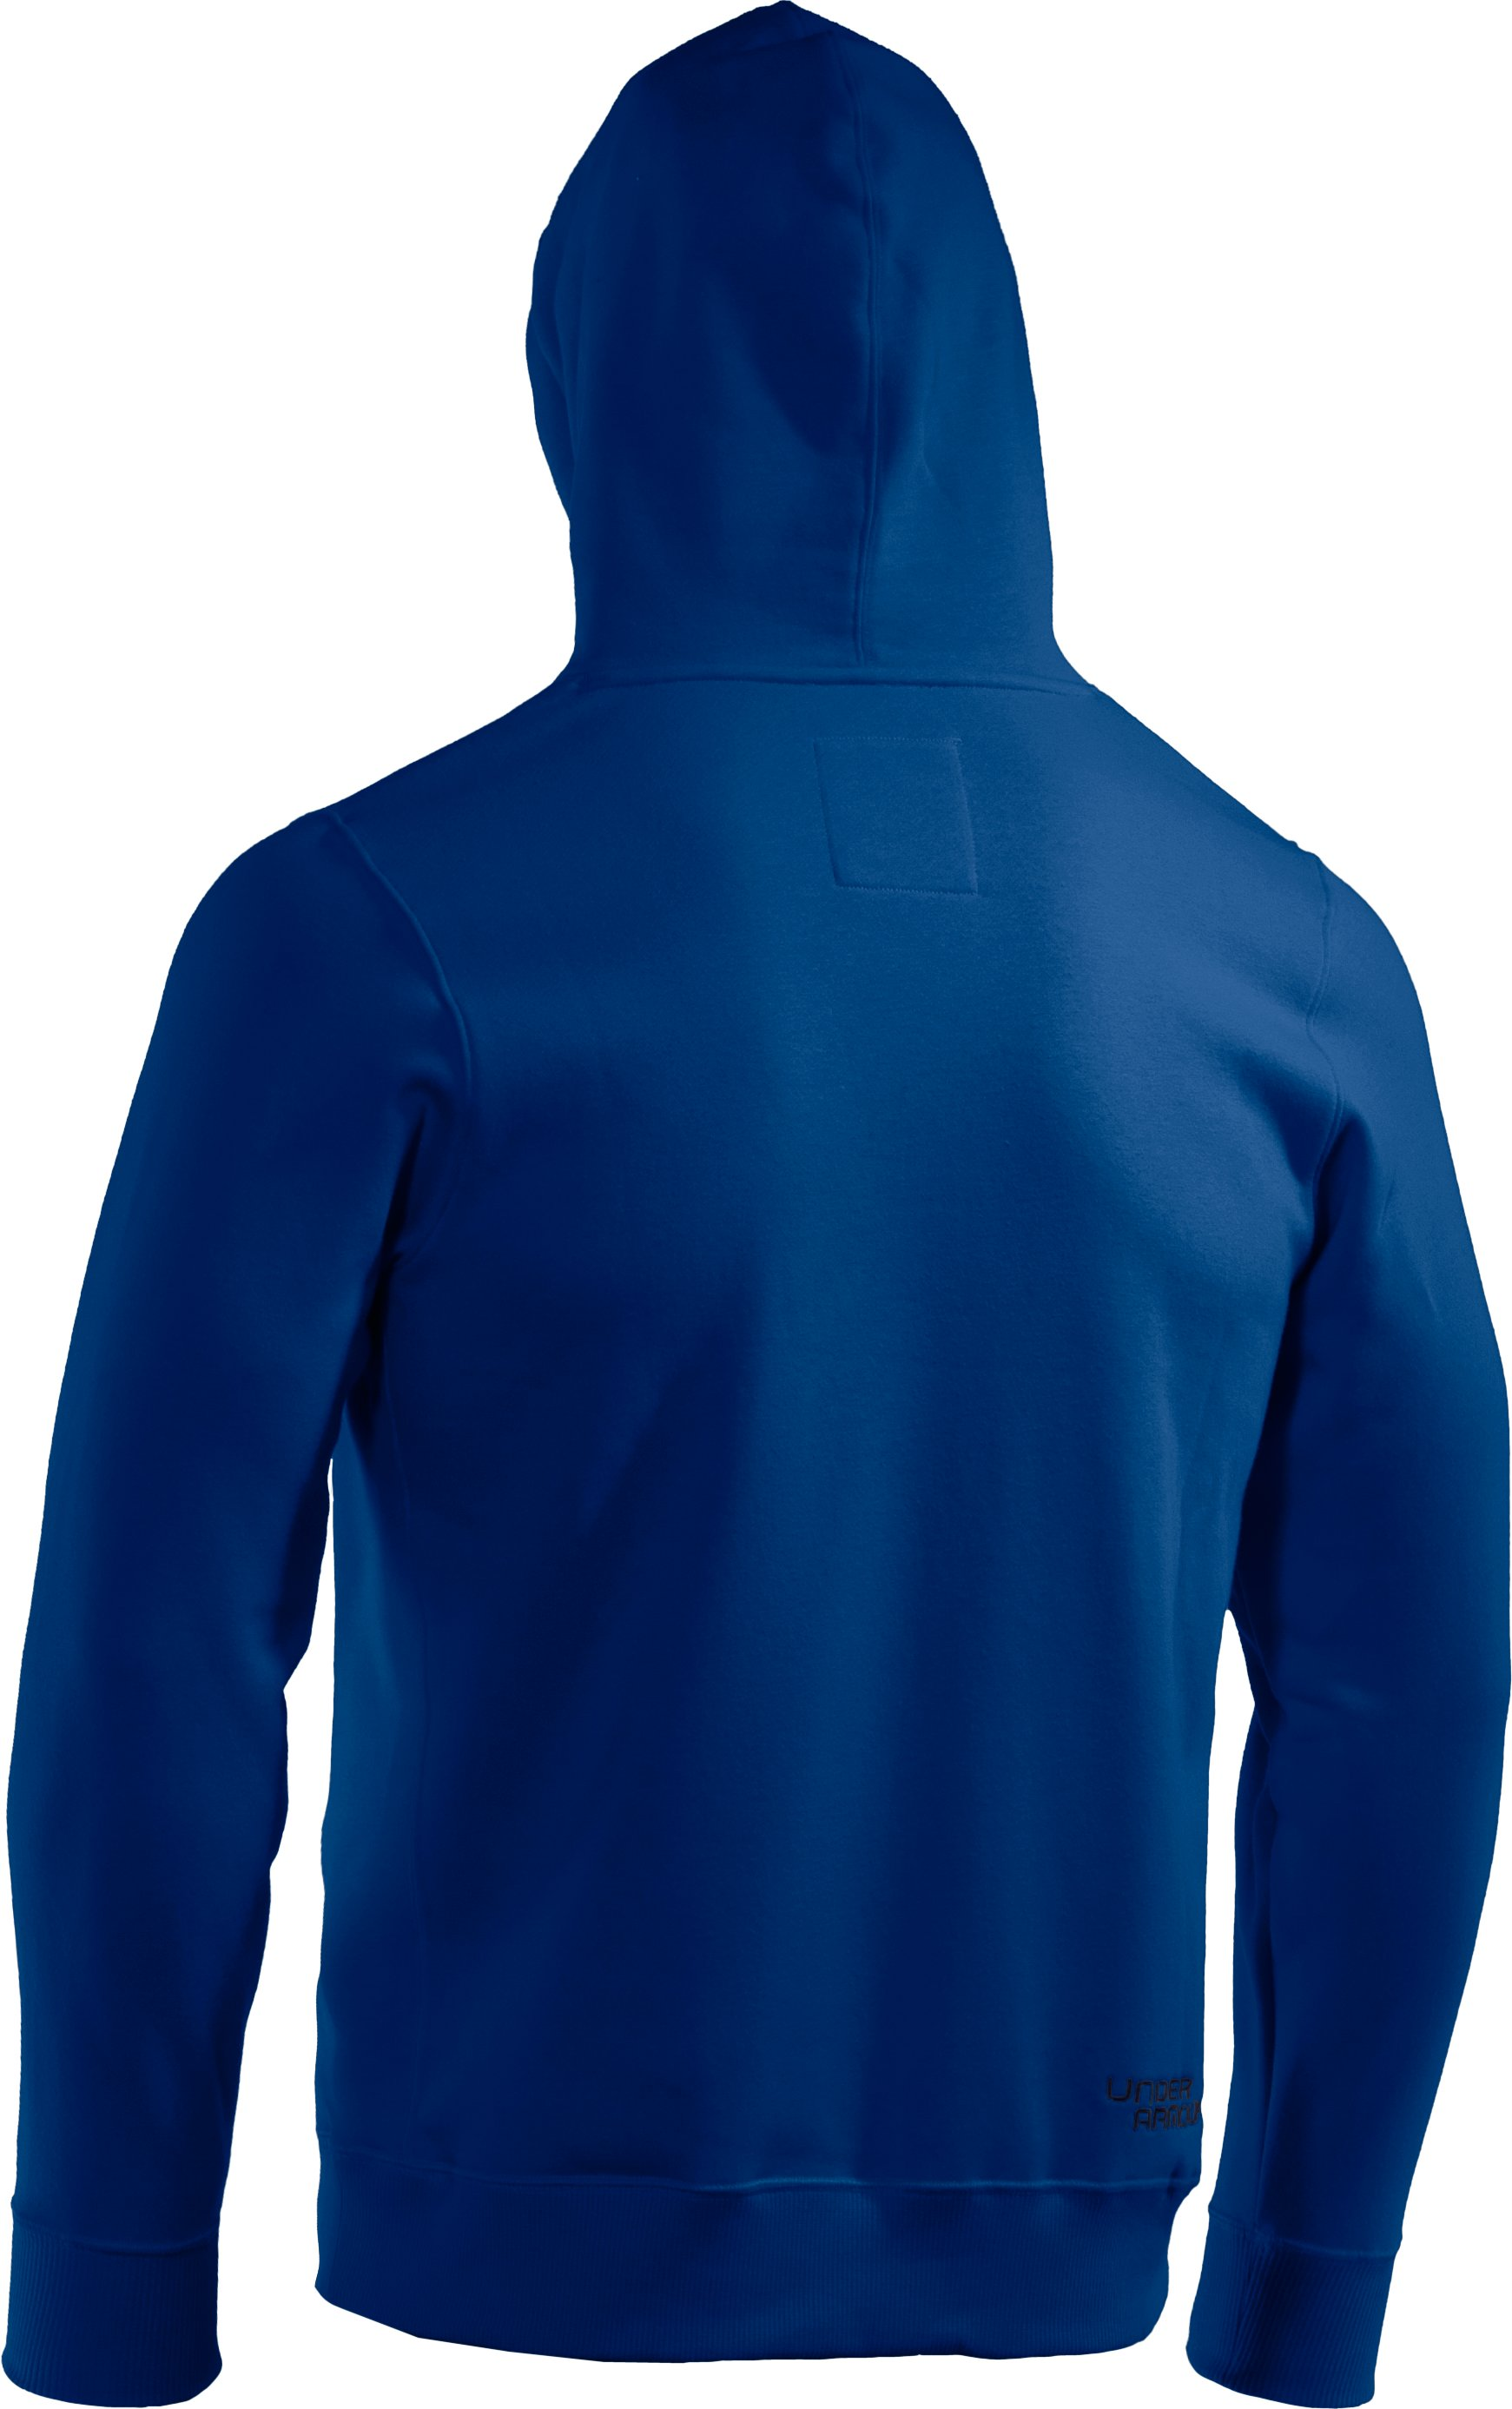 Men's Charged Cotton® Storm Pullover Hoodie, EMPIRE BLUE